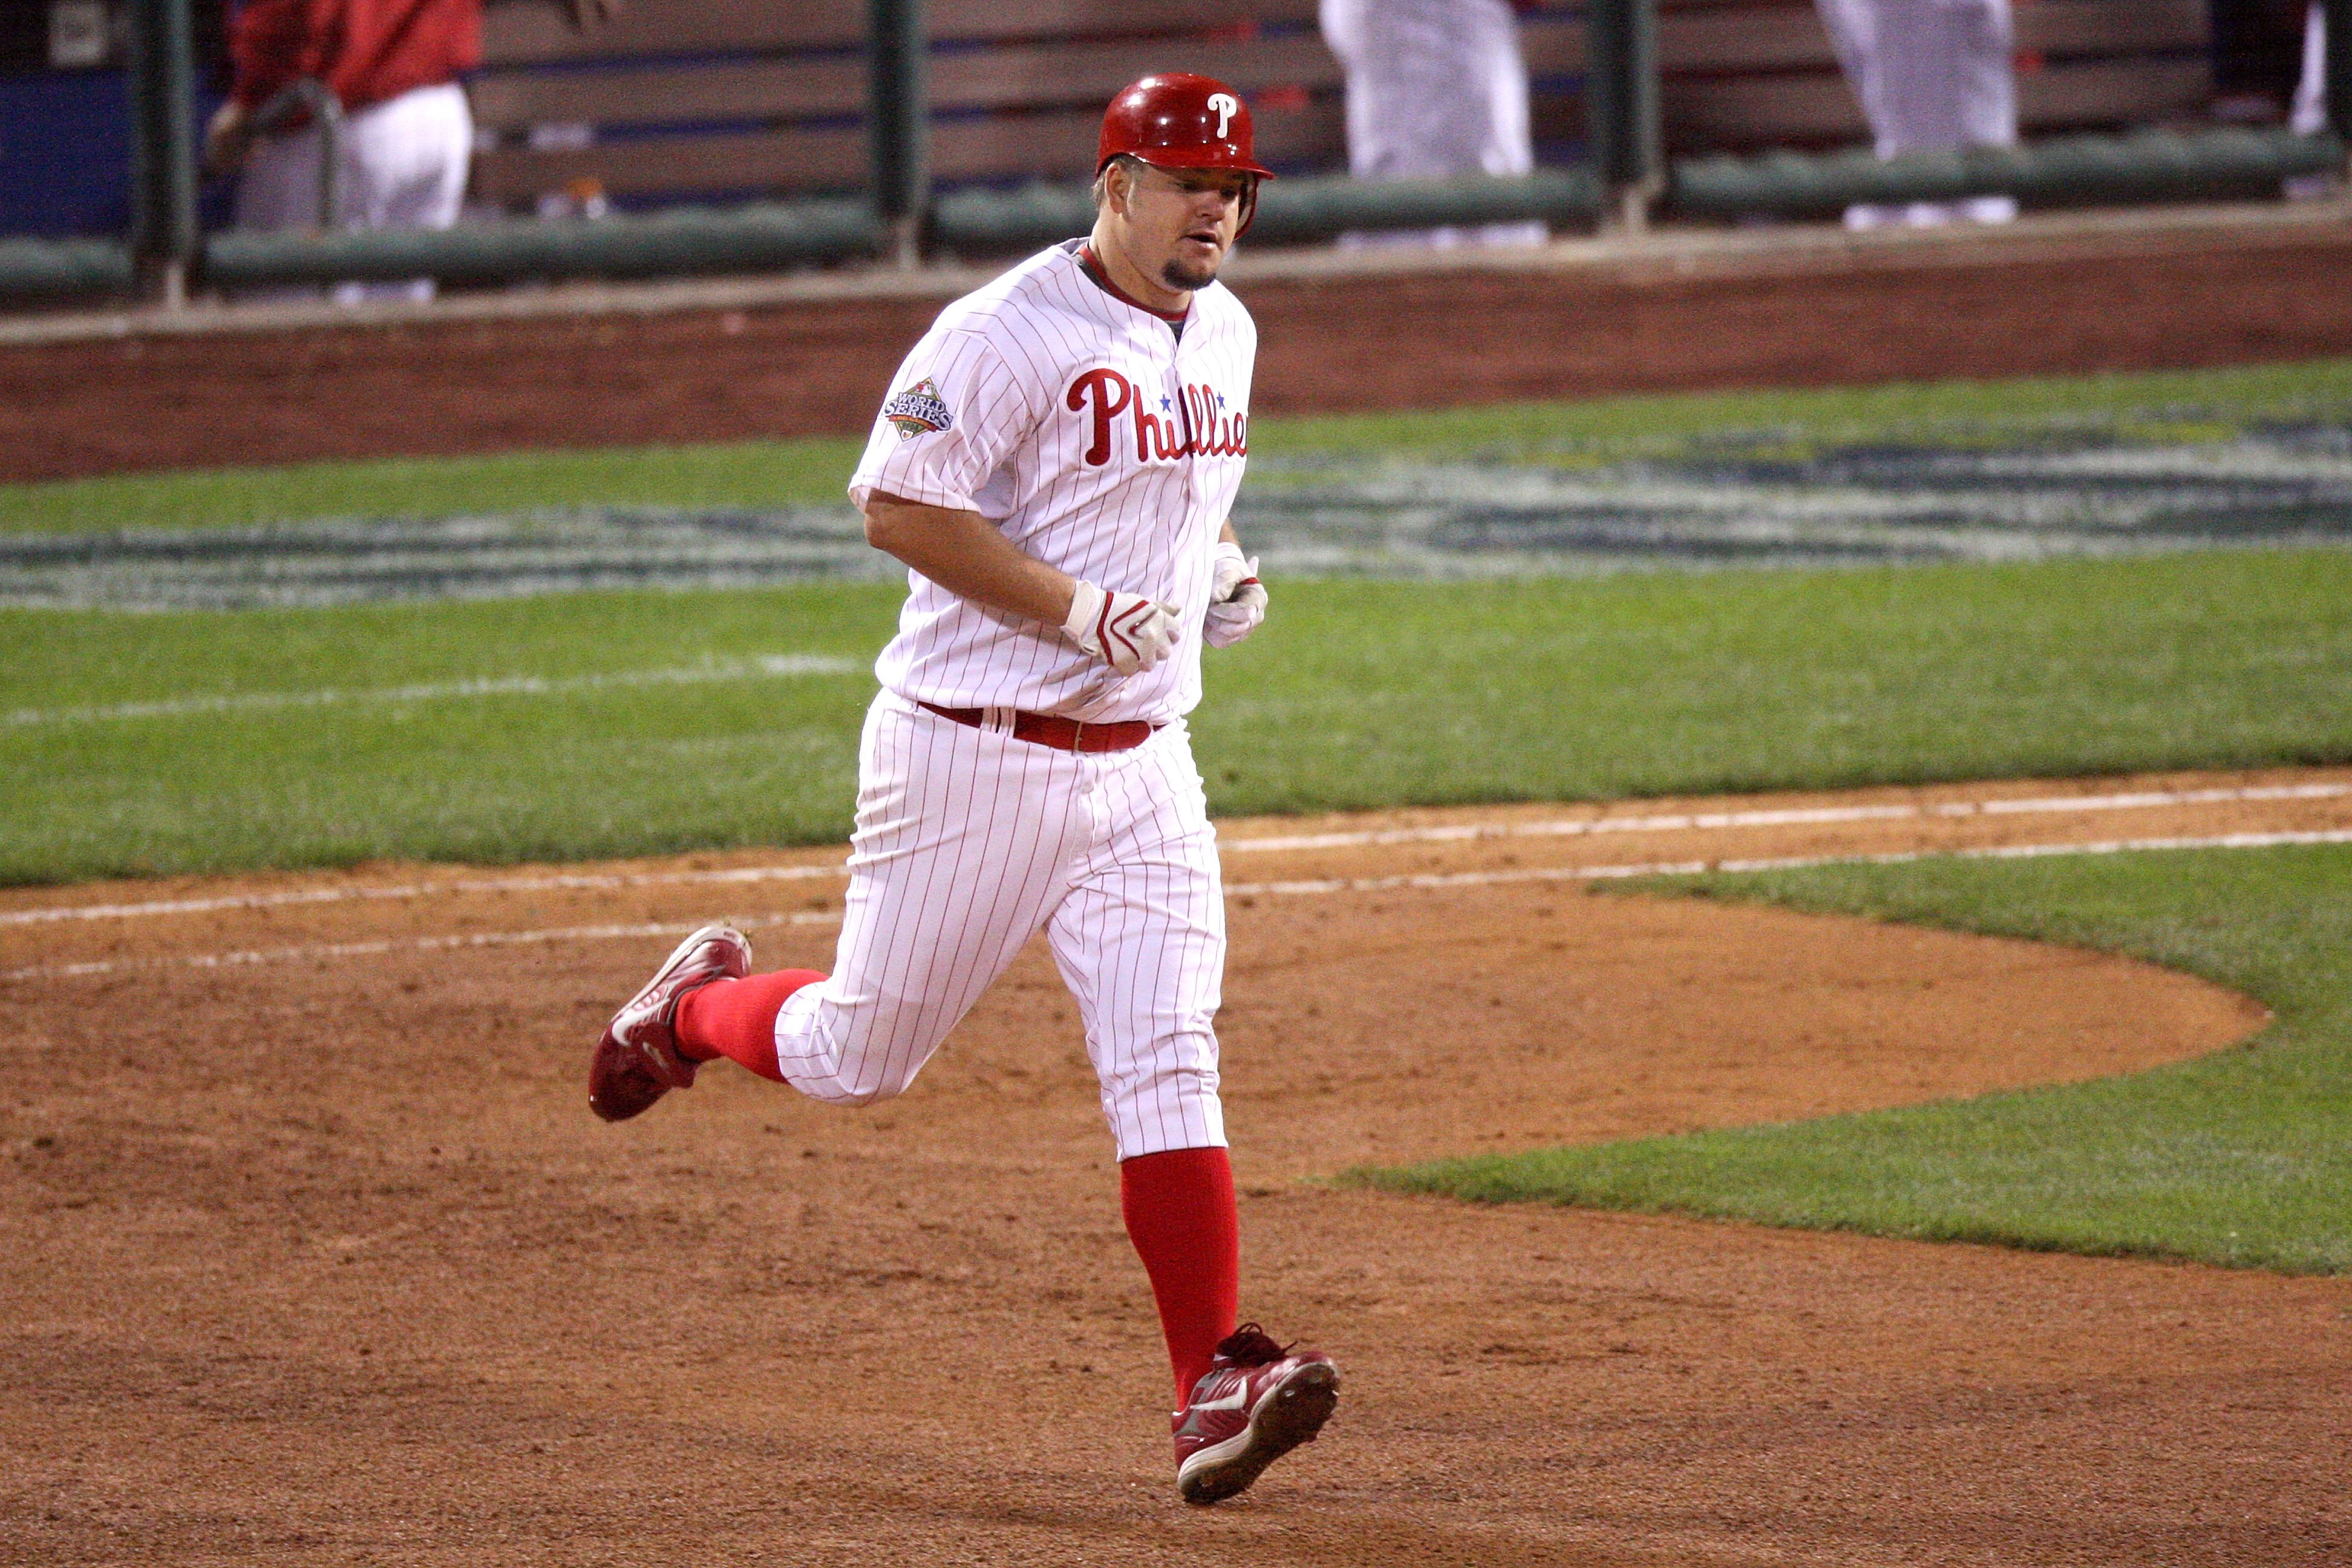 PHILADELPHIA - OCTOBER 26:  Joe Blanton #58 of the Philadelphia Phillies runs the bases on his solo home run in the bottom of the fifth inning against the Tampa Bay Rays during game four of the 2008 MLB World Series on October 26, 2008 at Citizens Bank Pa